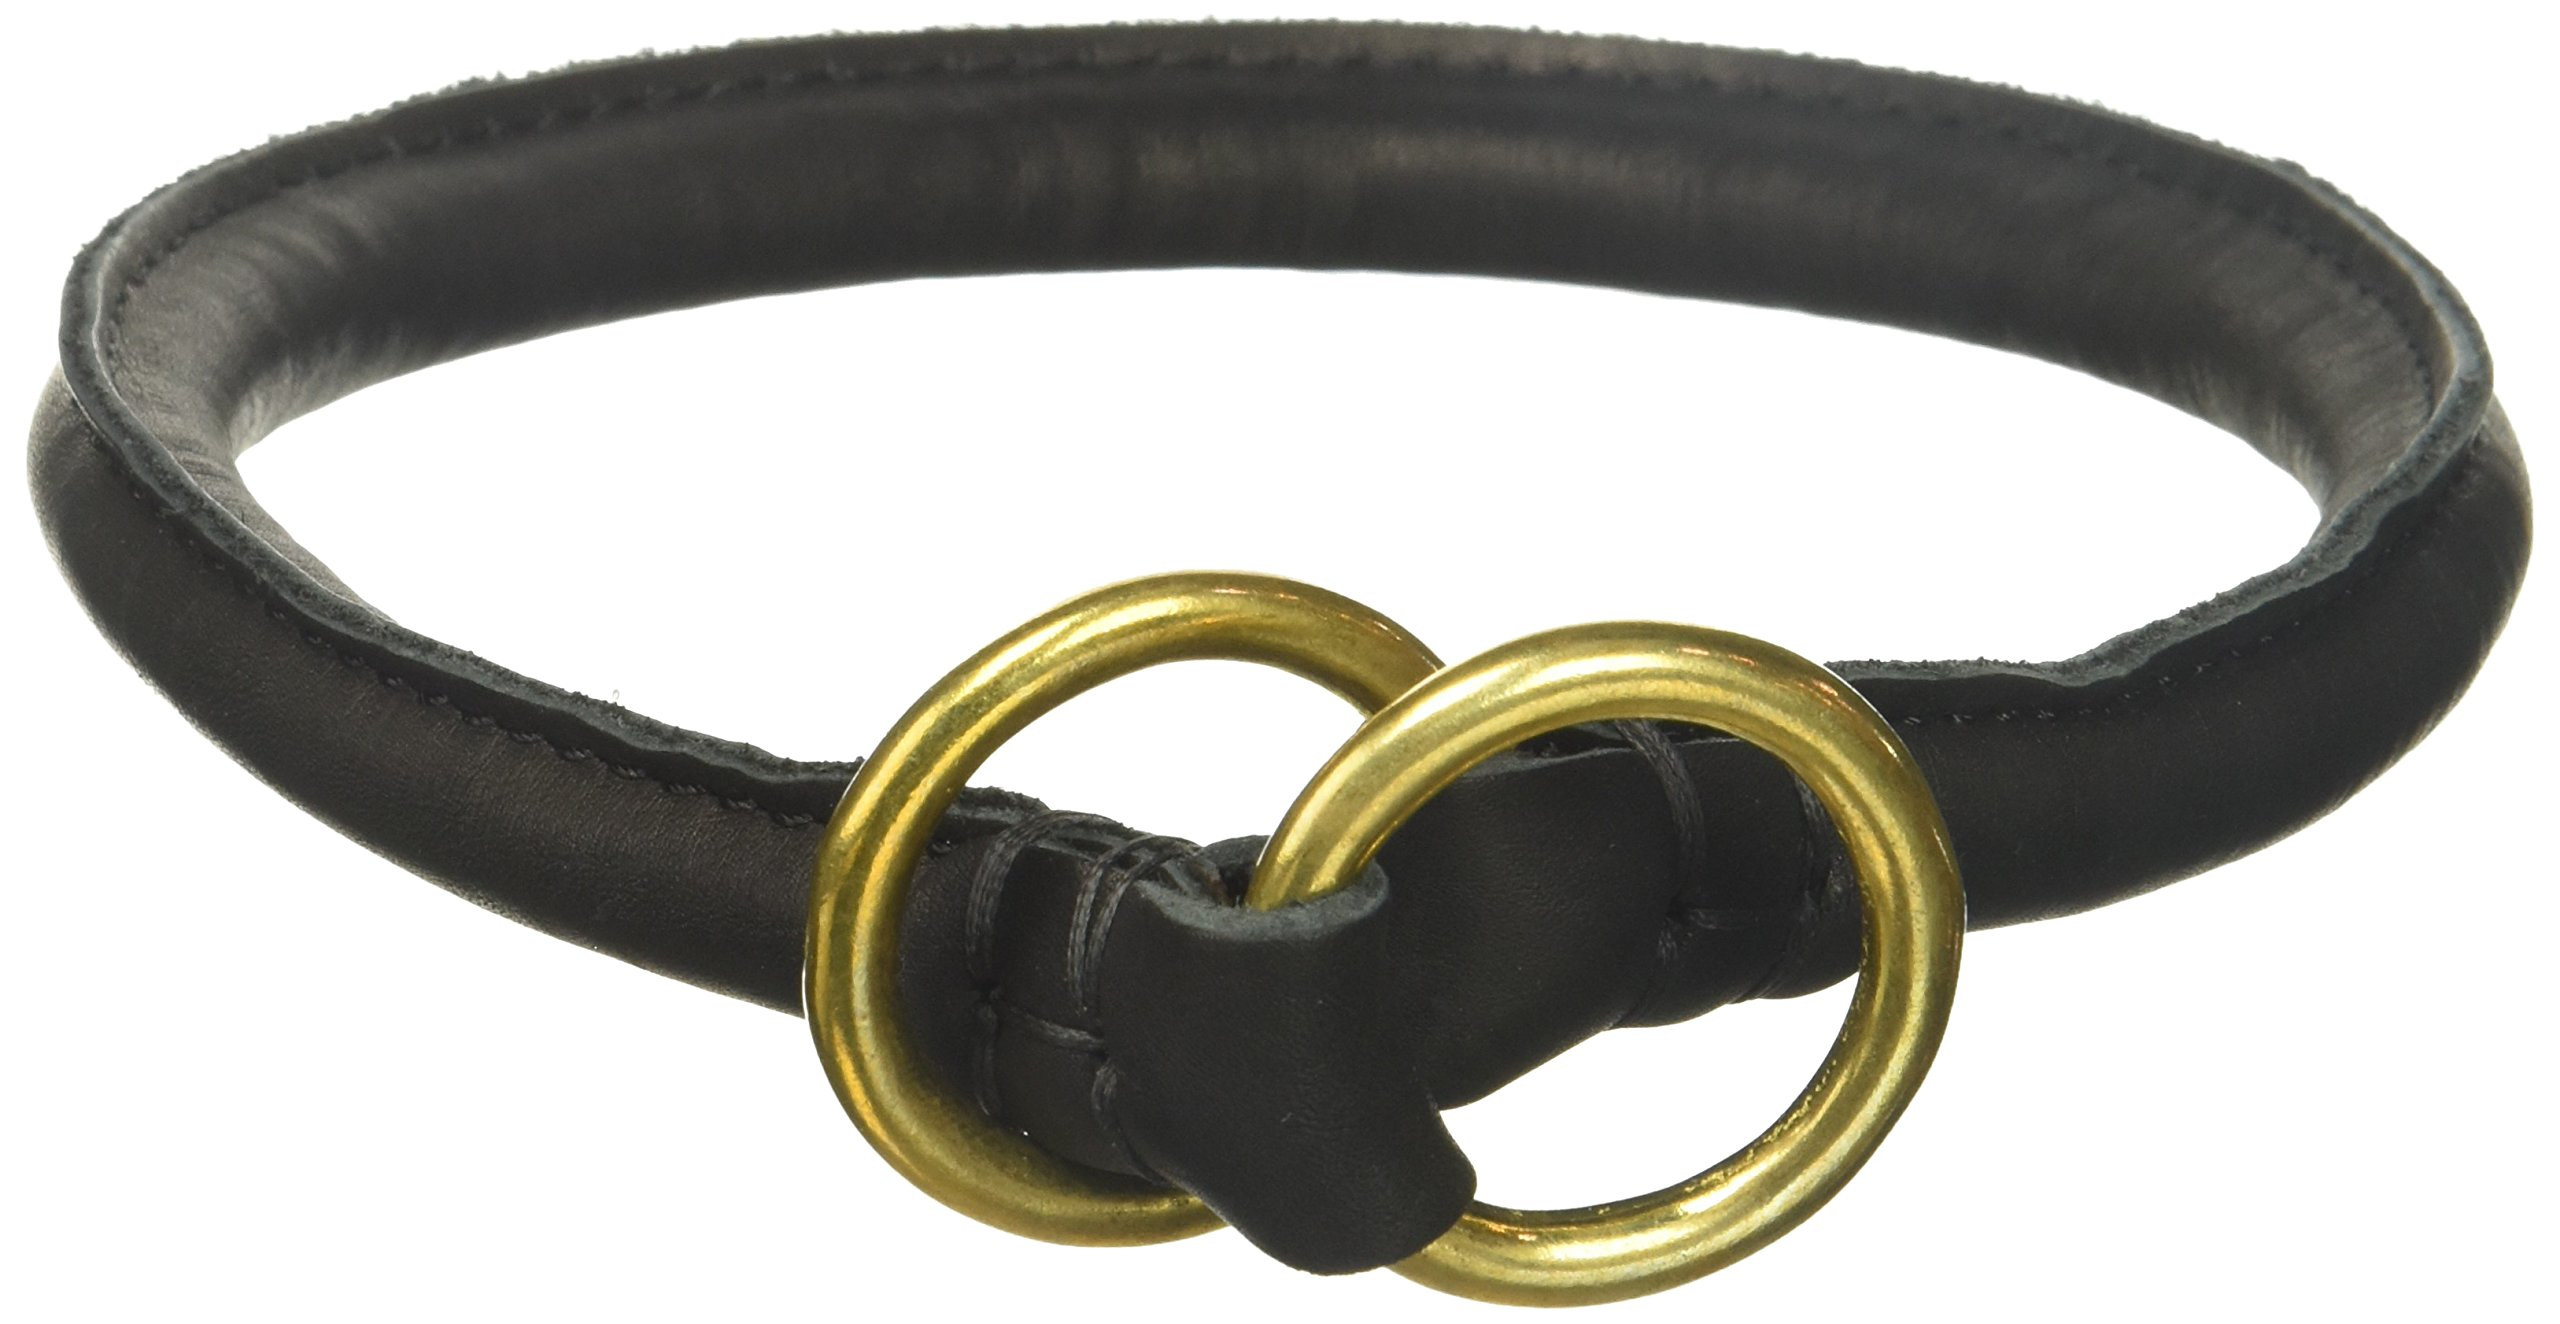 Dean and Tyler ''DESPERADO'', Rounded Dog Choke Collar with Brass Hardware - Black - Size 20-Inch by 1/2-Inch Diameter - Fits Neck 18-Inch to 20-Inch